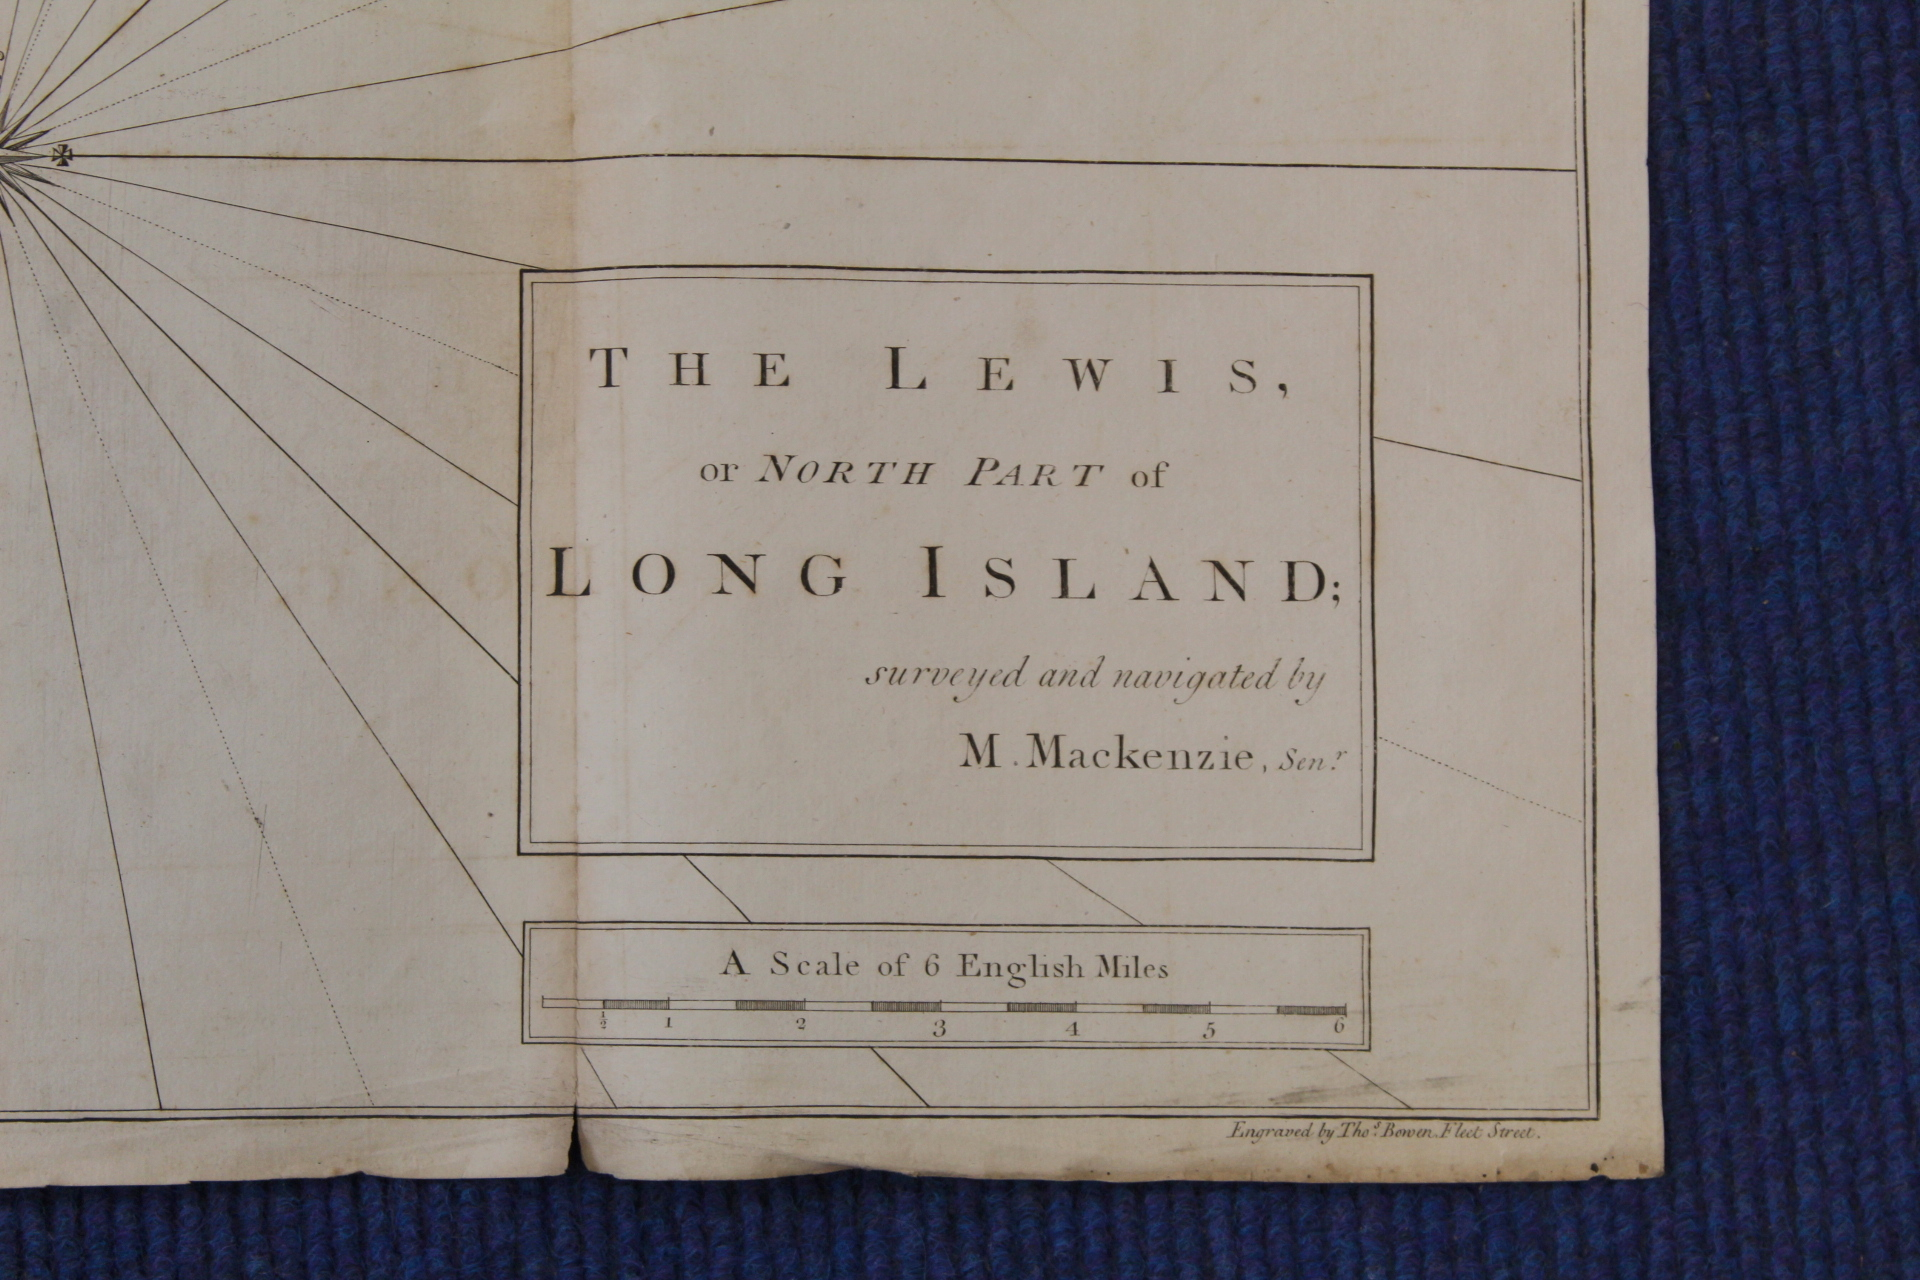 MACKENZIE MURDOCH (SNR.).A General Chart of the West Coast & Western Islands of Scotland from - Image 17 of 66